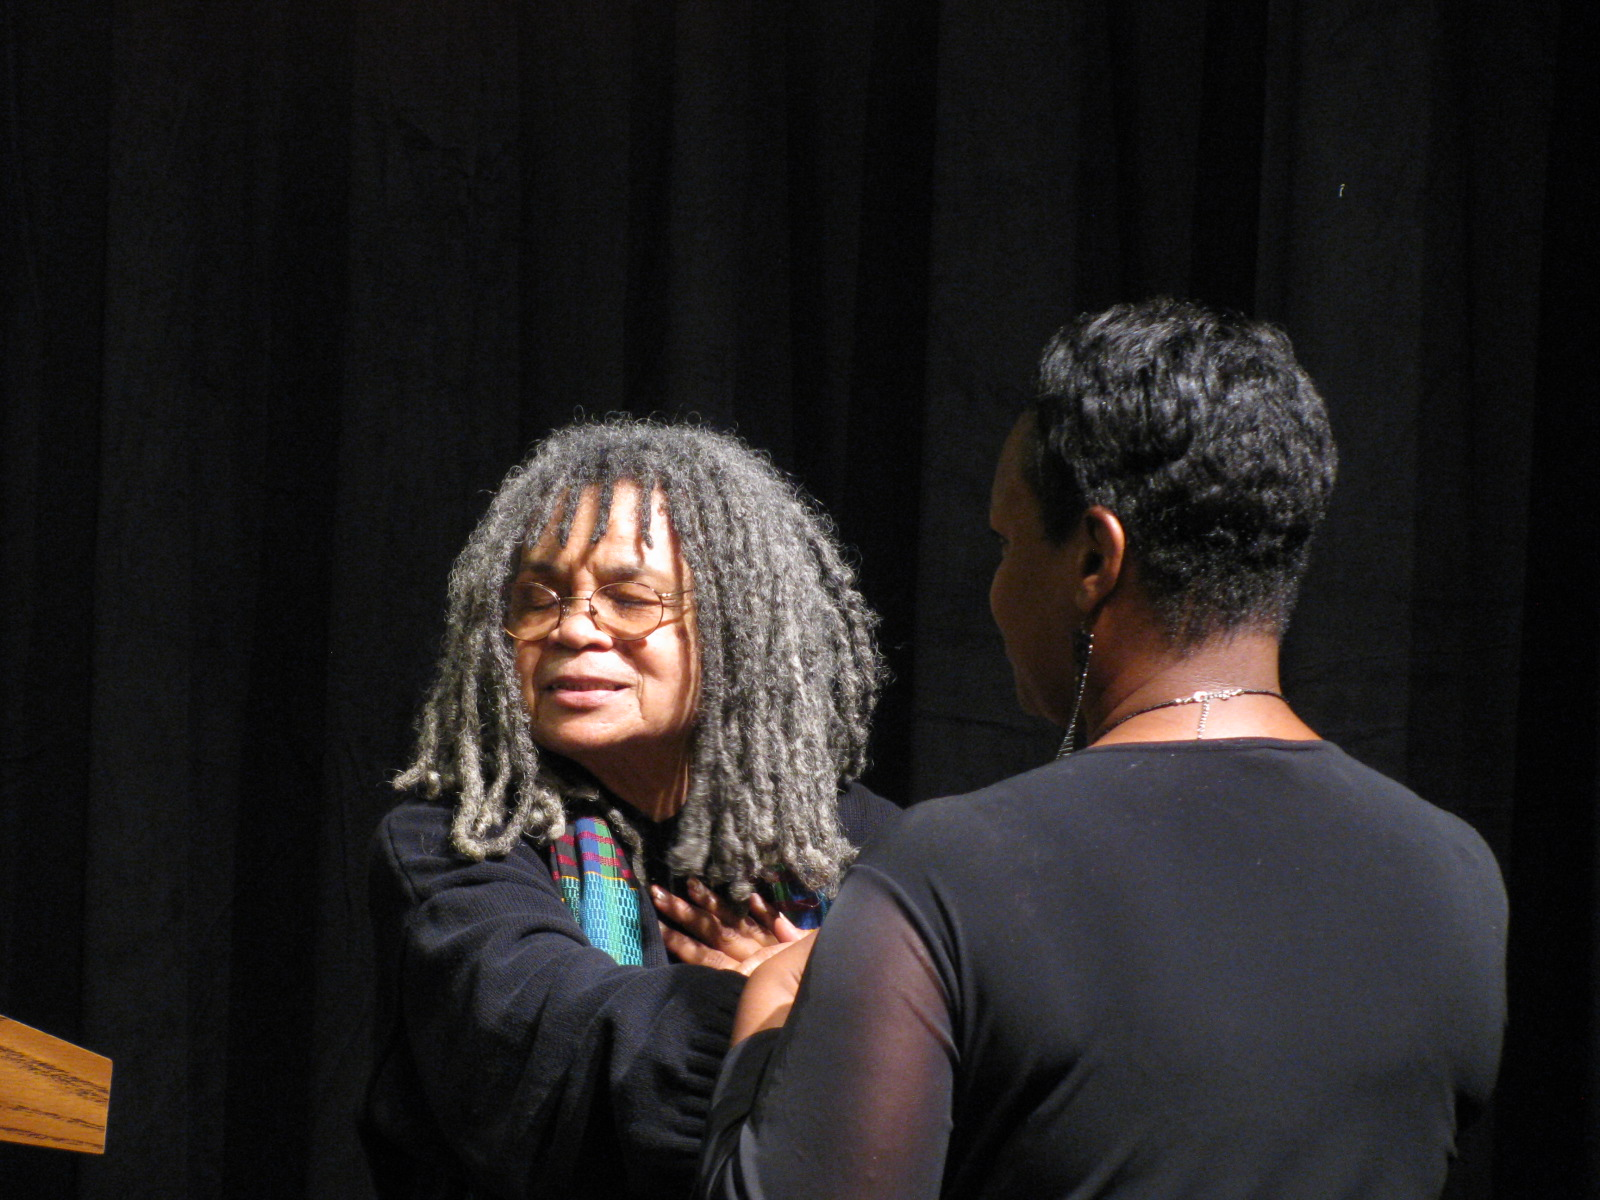 Sonia Sanchez | Image from Wikimedia Commons